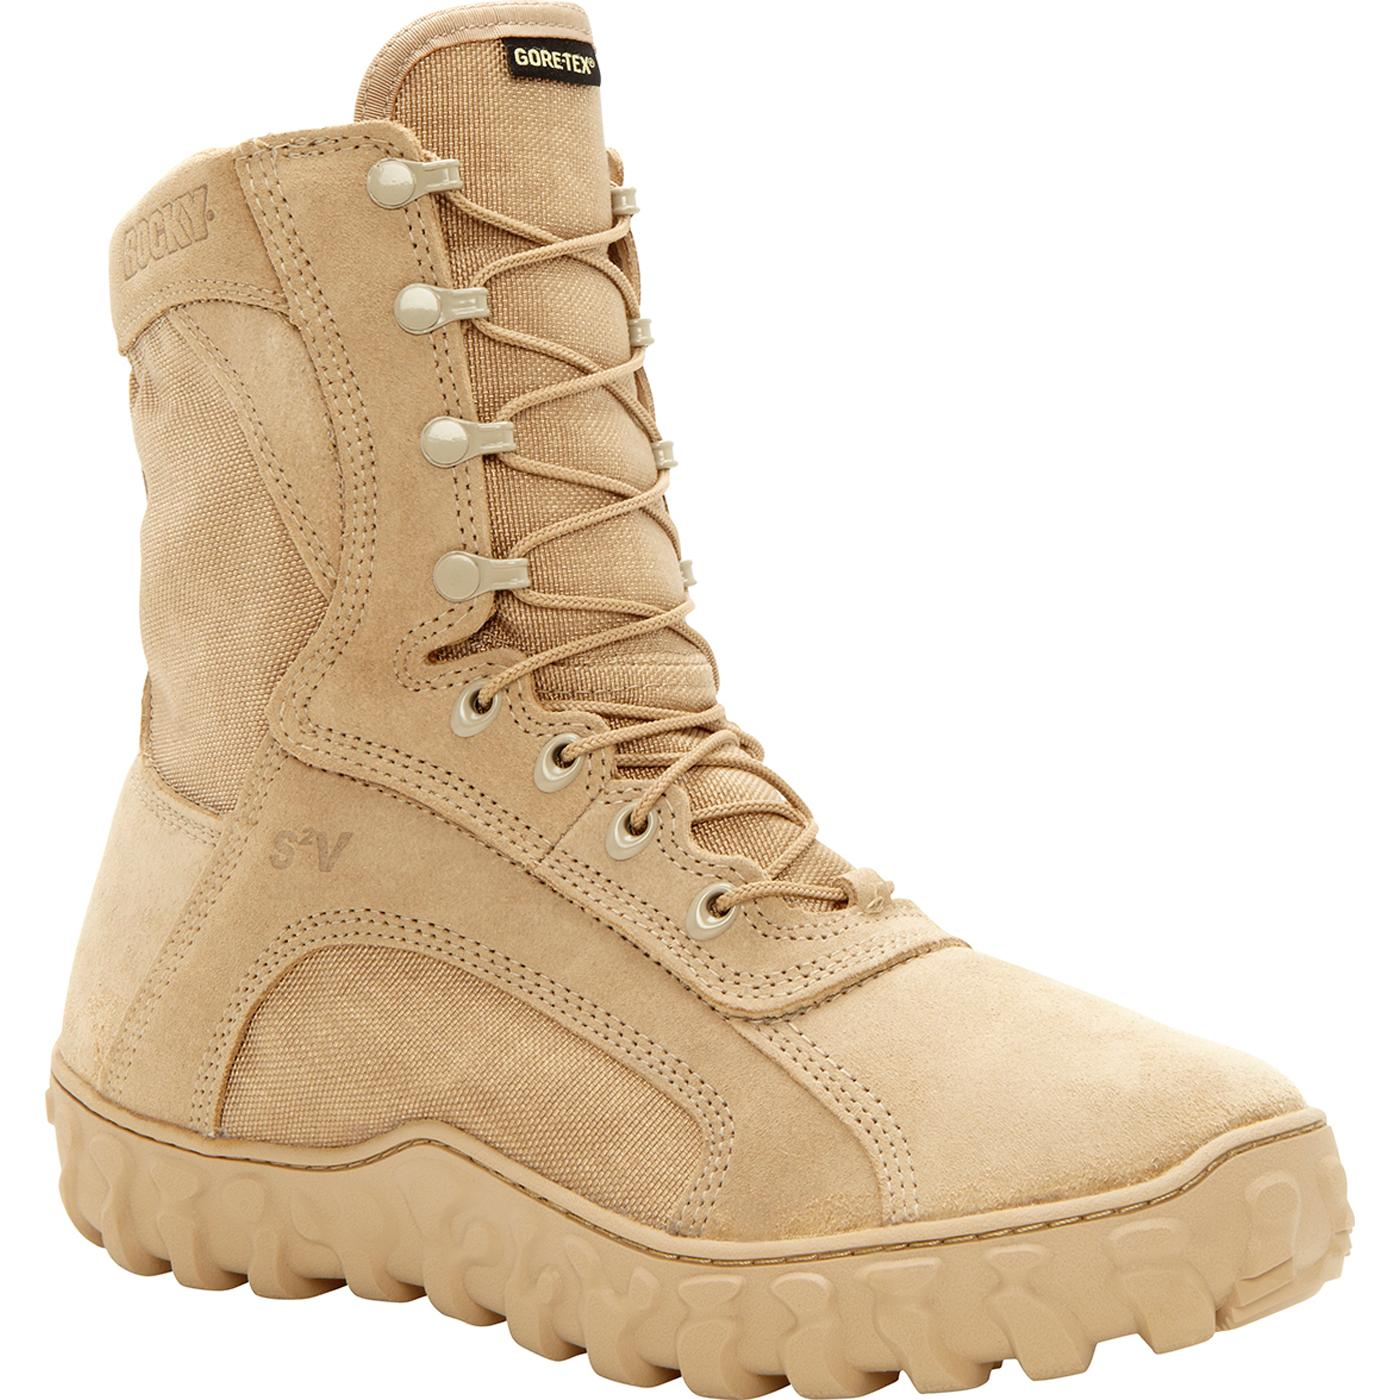 Rocky S2v Gore Tex Waterproof Insulated Military Boots